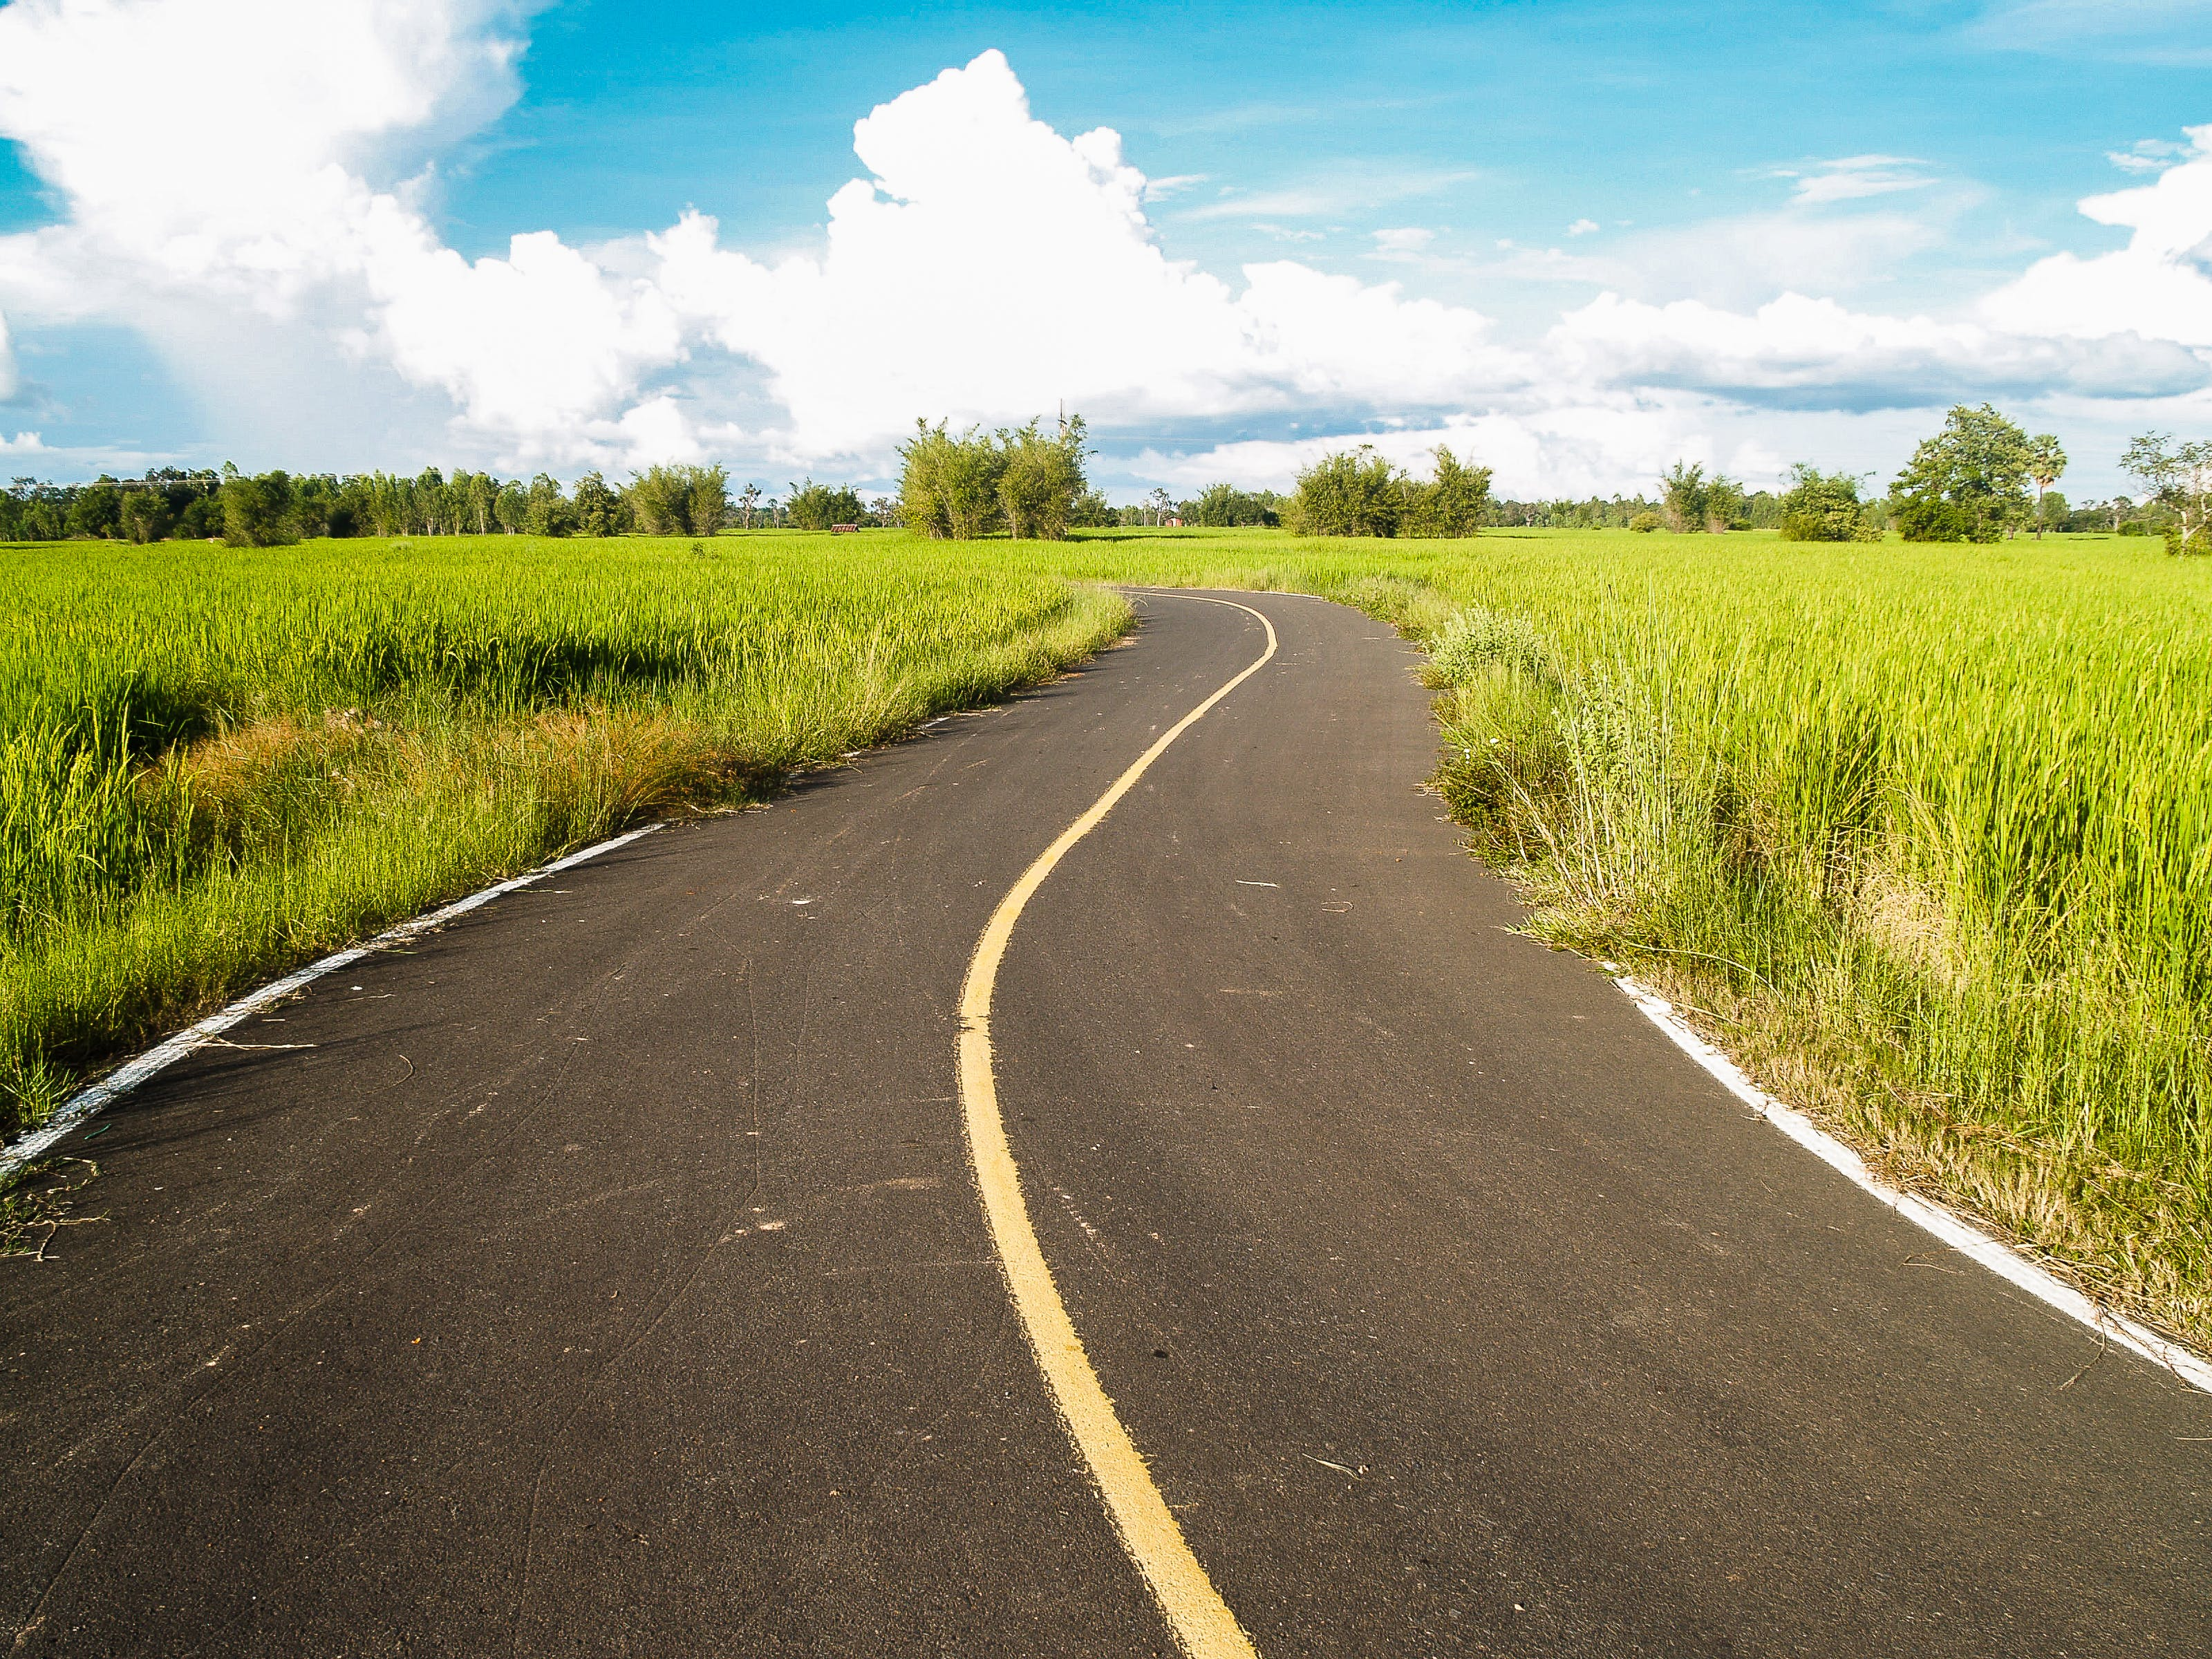 Paved Road in Between Green Grass Field